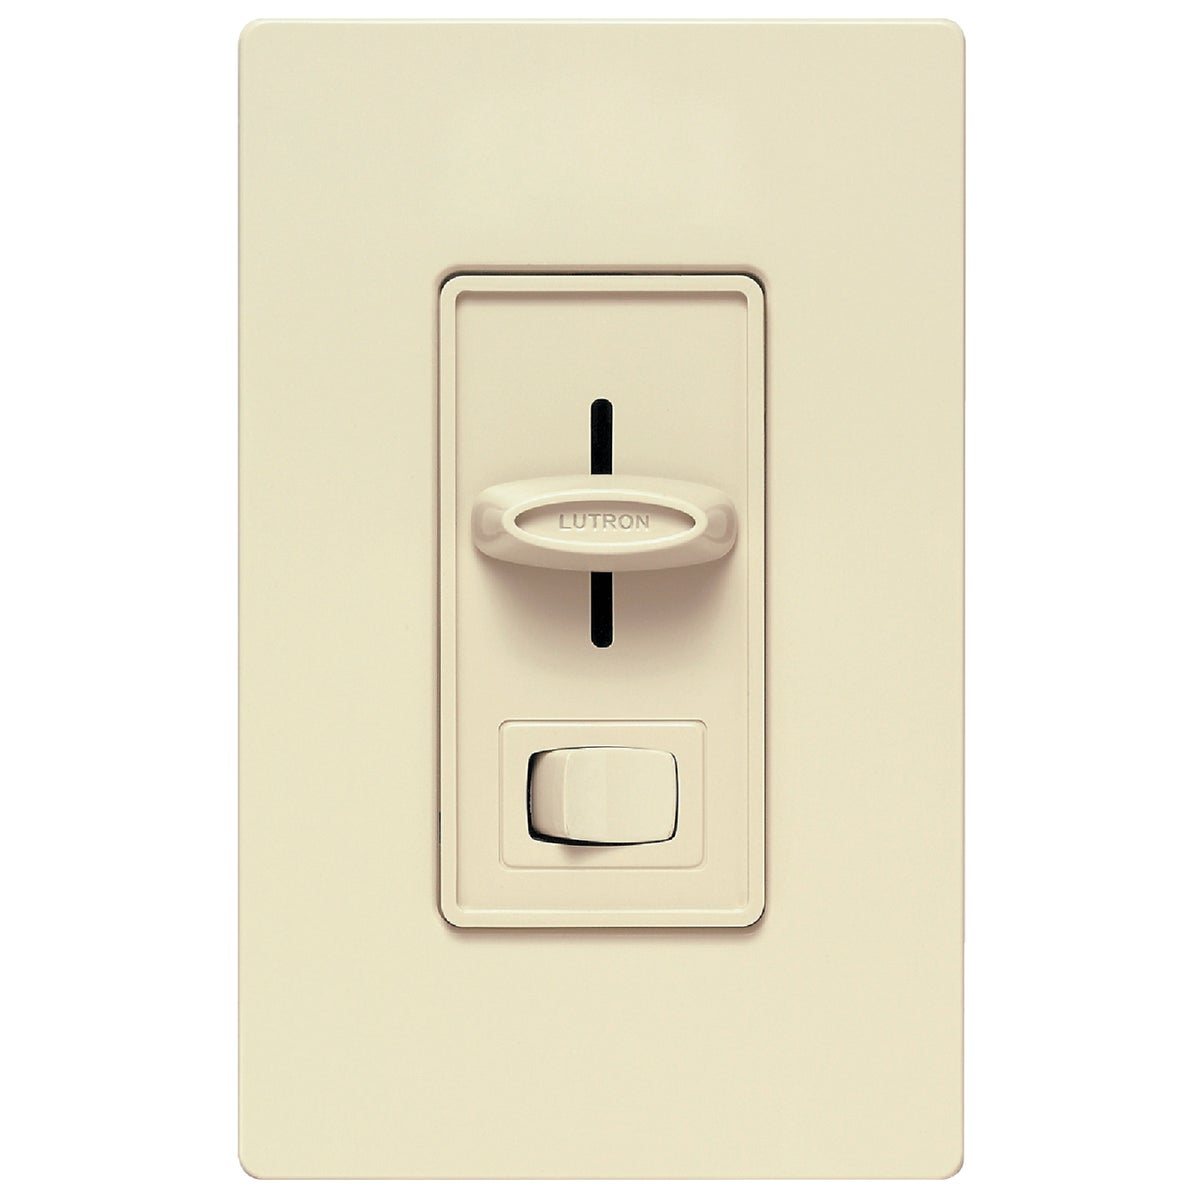 IV 3-WAY SLIDE DIMMER - S-603PH-IV by Lutron Elect Co Inc